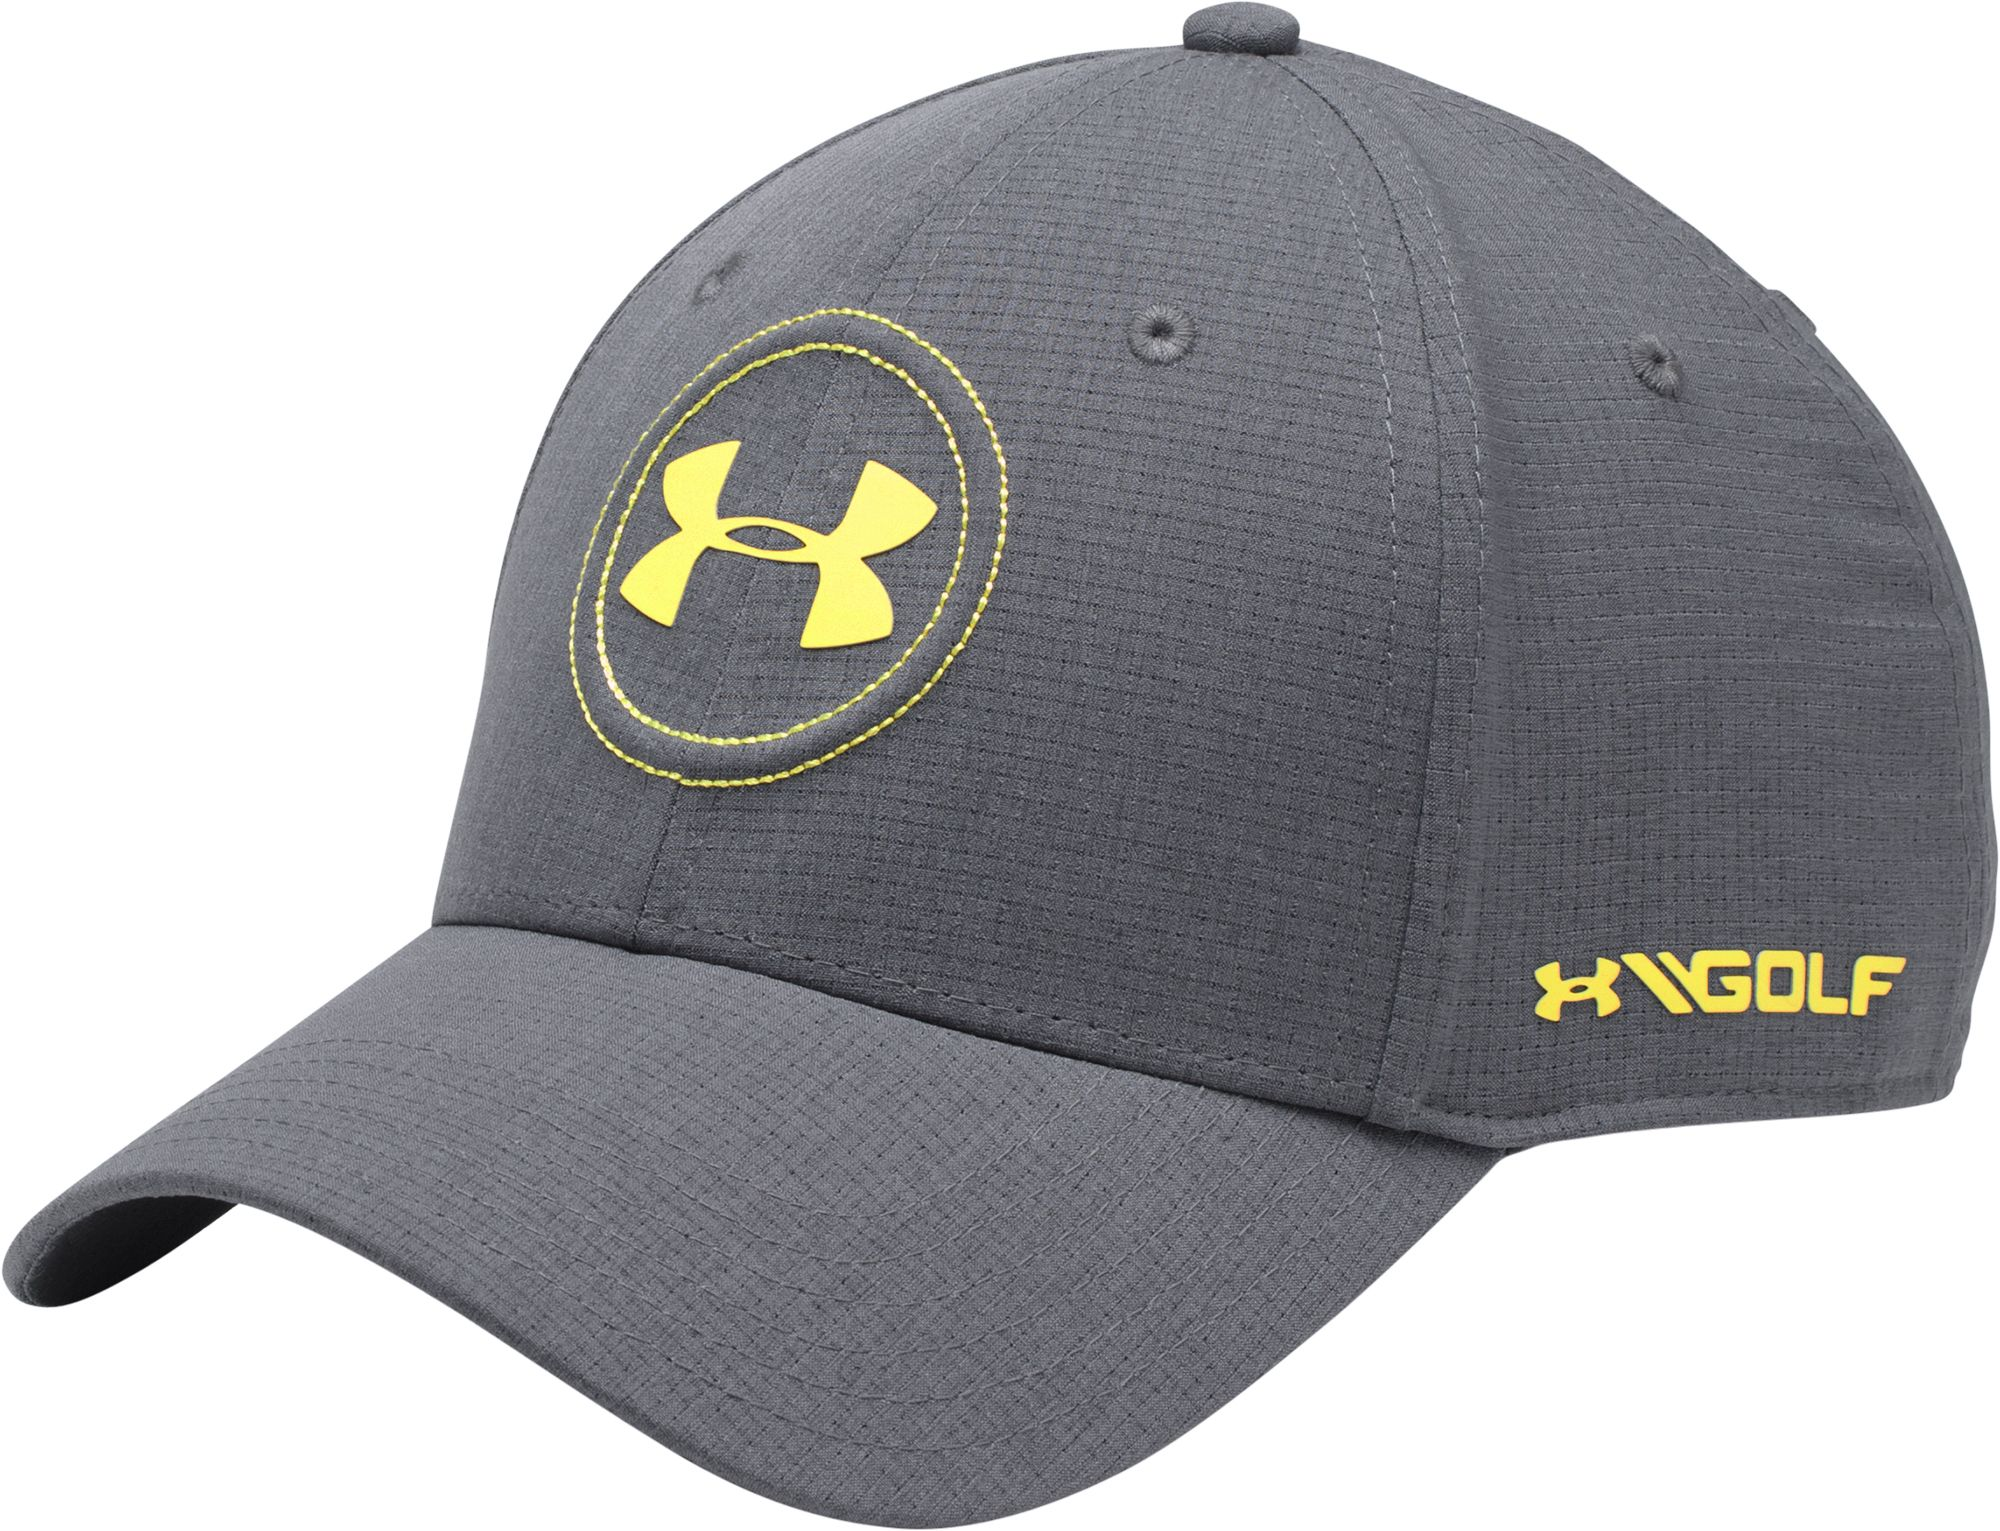 Under armour hat trucker bass fishing hat clearance for Under armor fishing hat